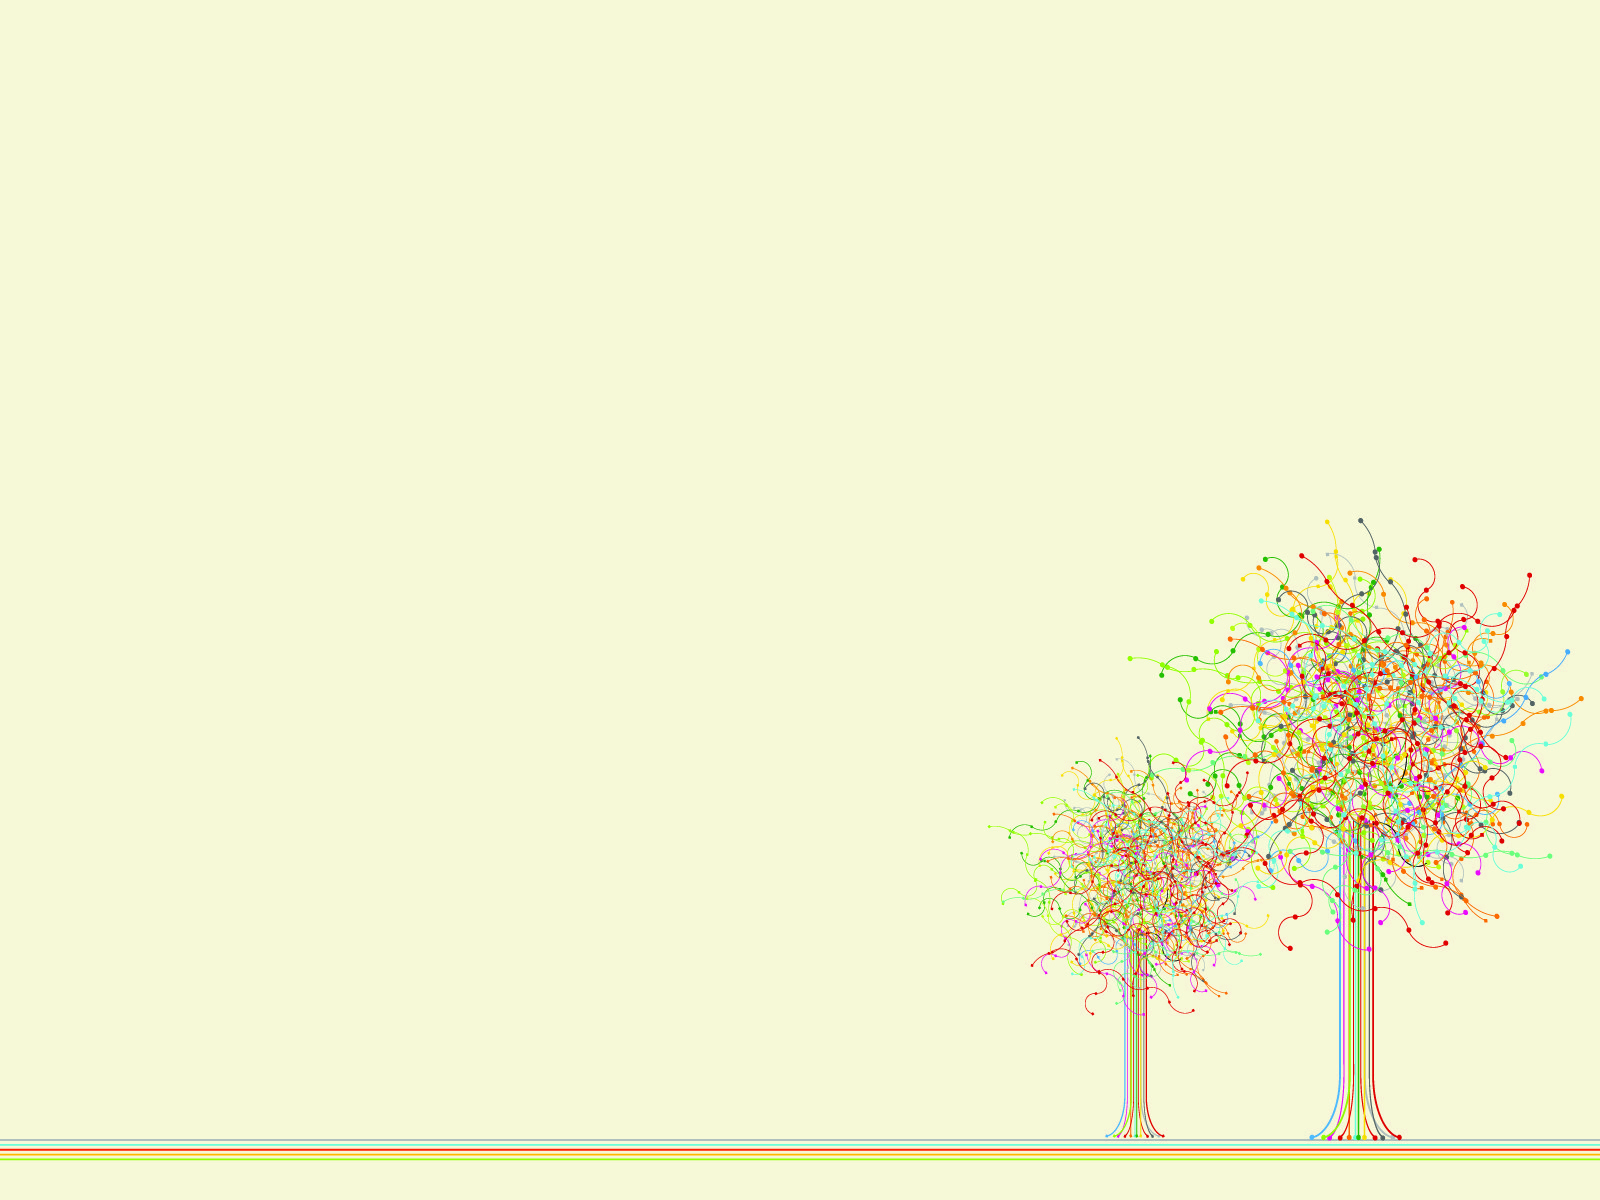 Fairy Tales PowerPoint Templates and Backgrounds for Your